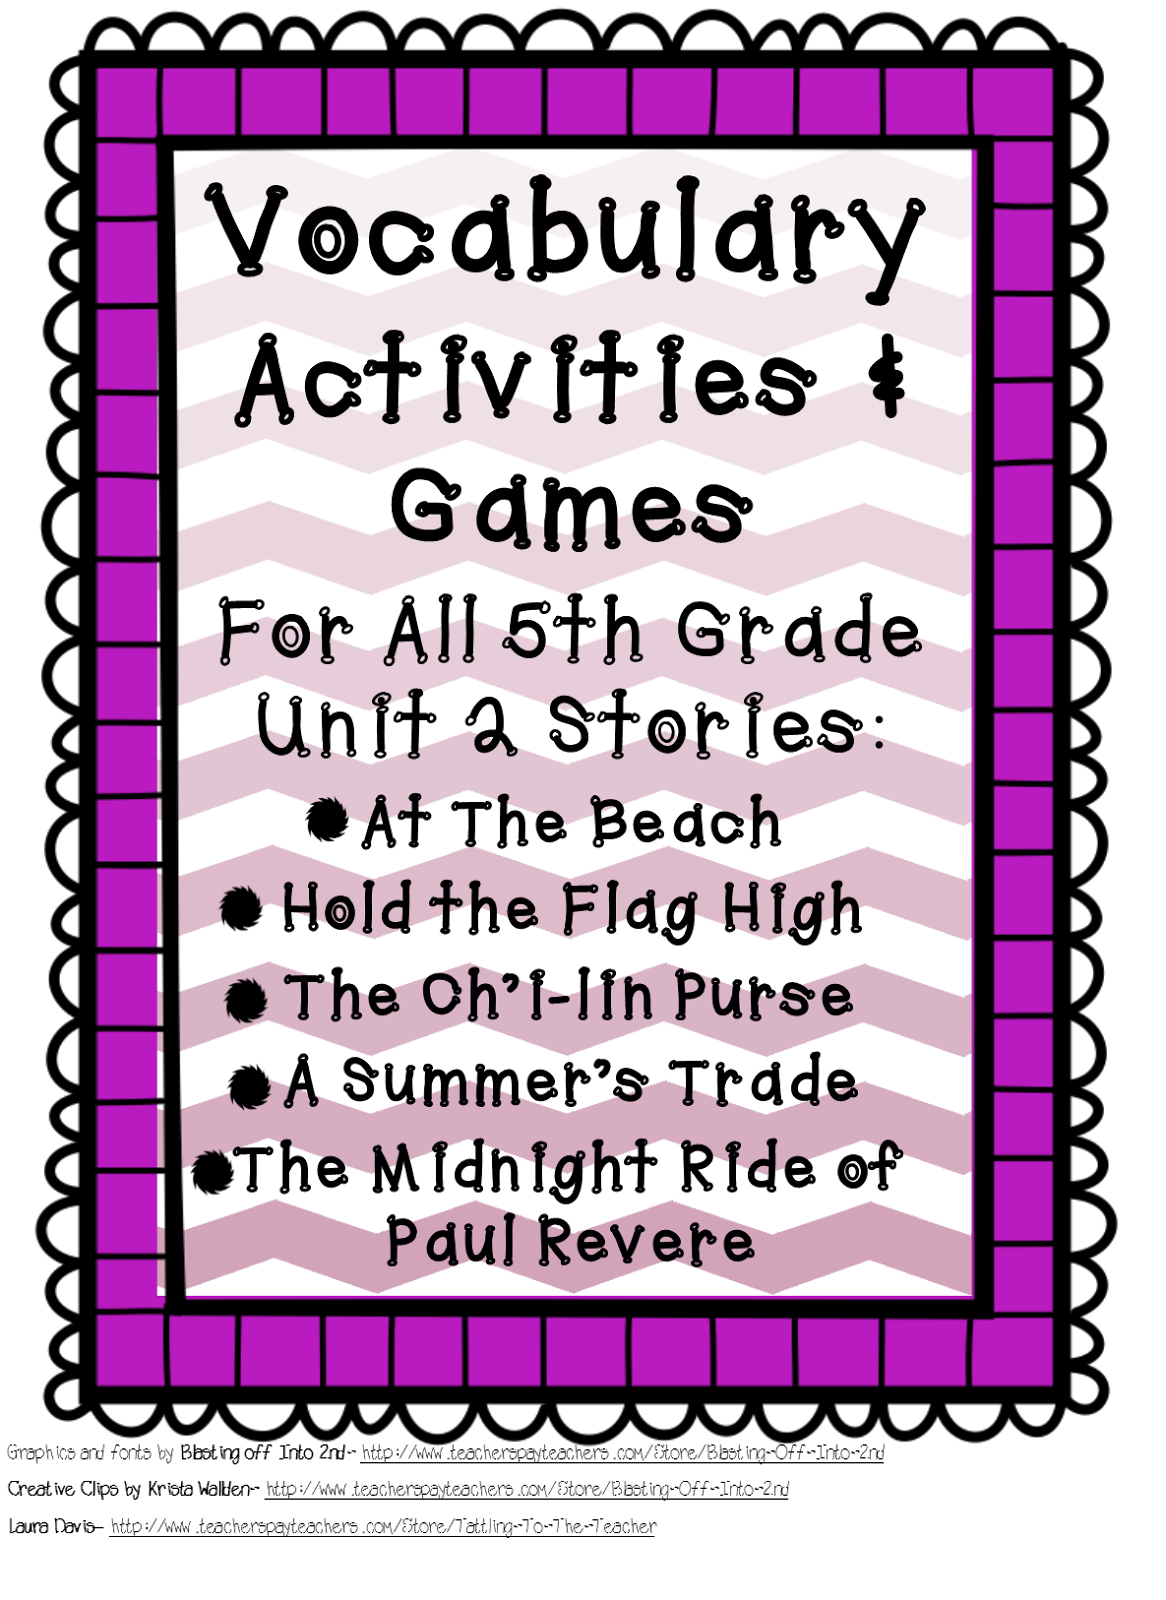 Worksheet 5th Grade Reading Material worksheet 5th grade reading material mikyu free fifth is fab street vocabulary resources httpwww teacherspayteachers